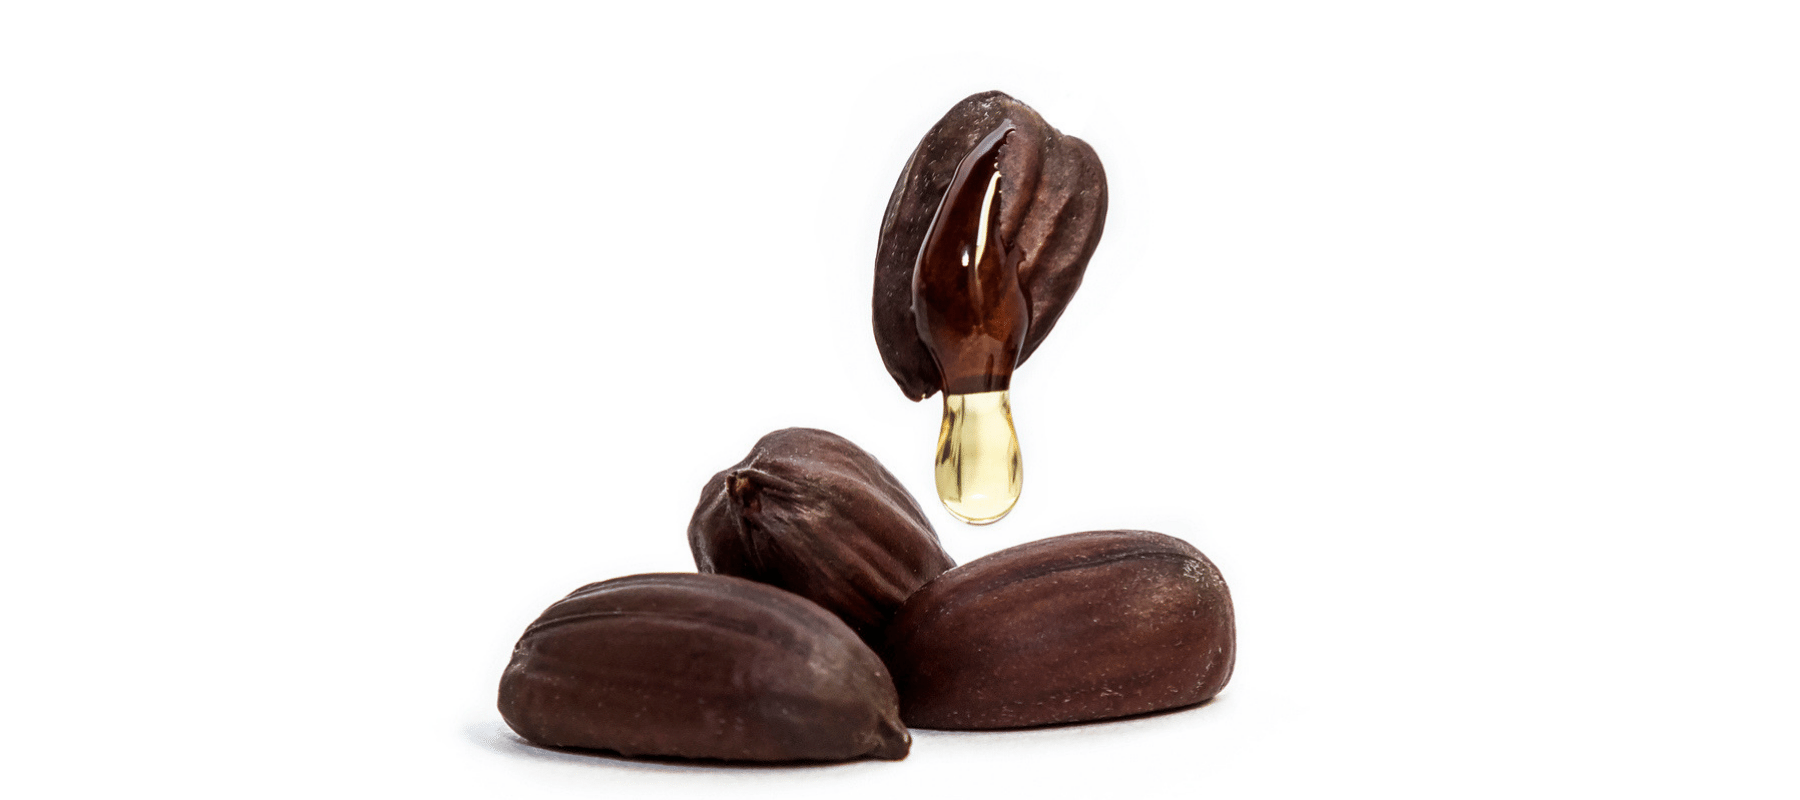 Introducing: Helpful Jojoba Oil